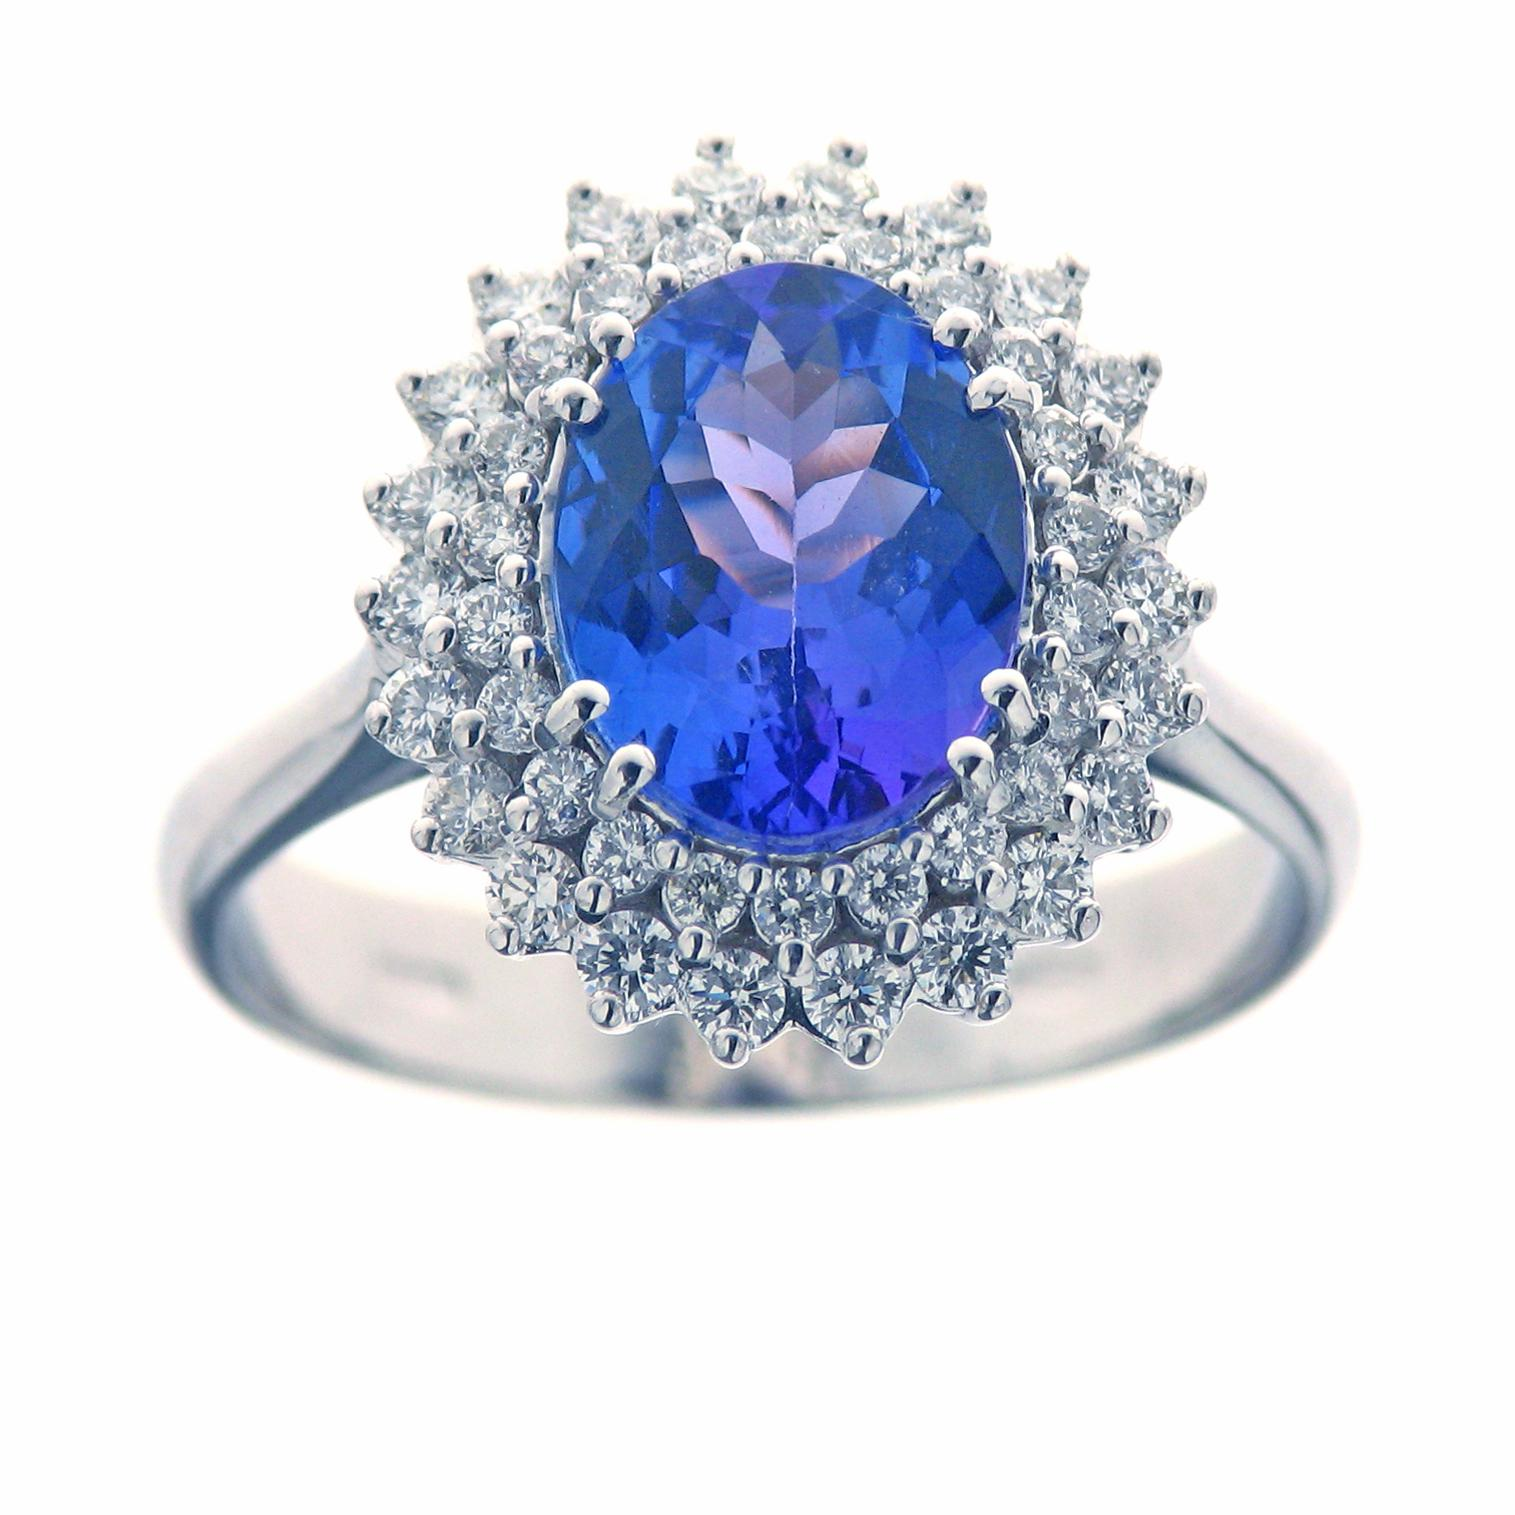 Gival 18ct White Gold Diamond & Tanzanite Ring 3822/A